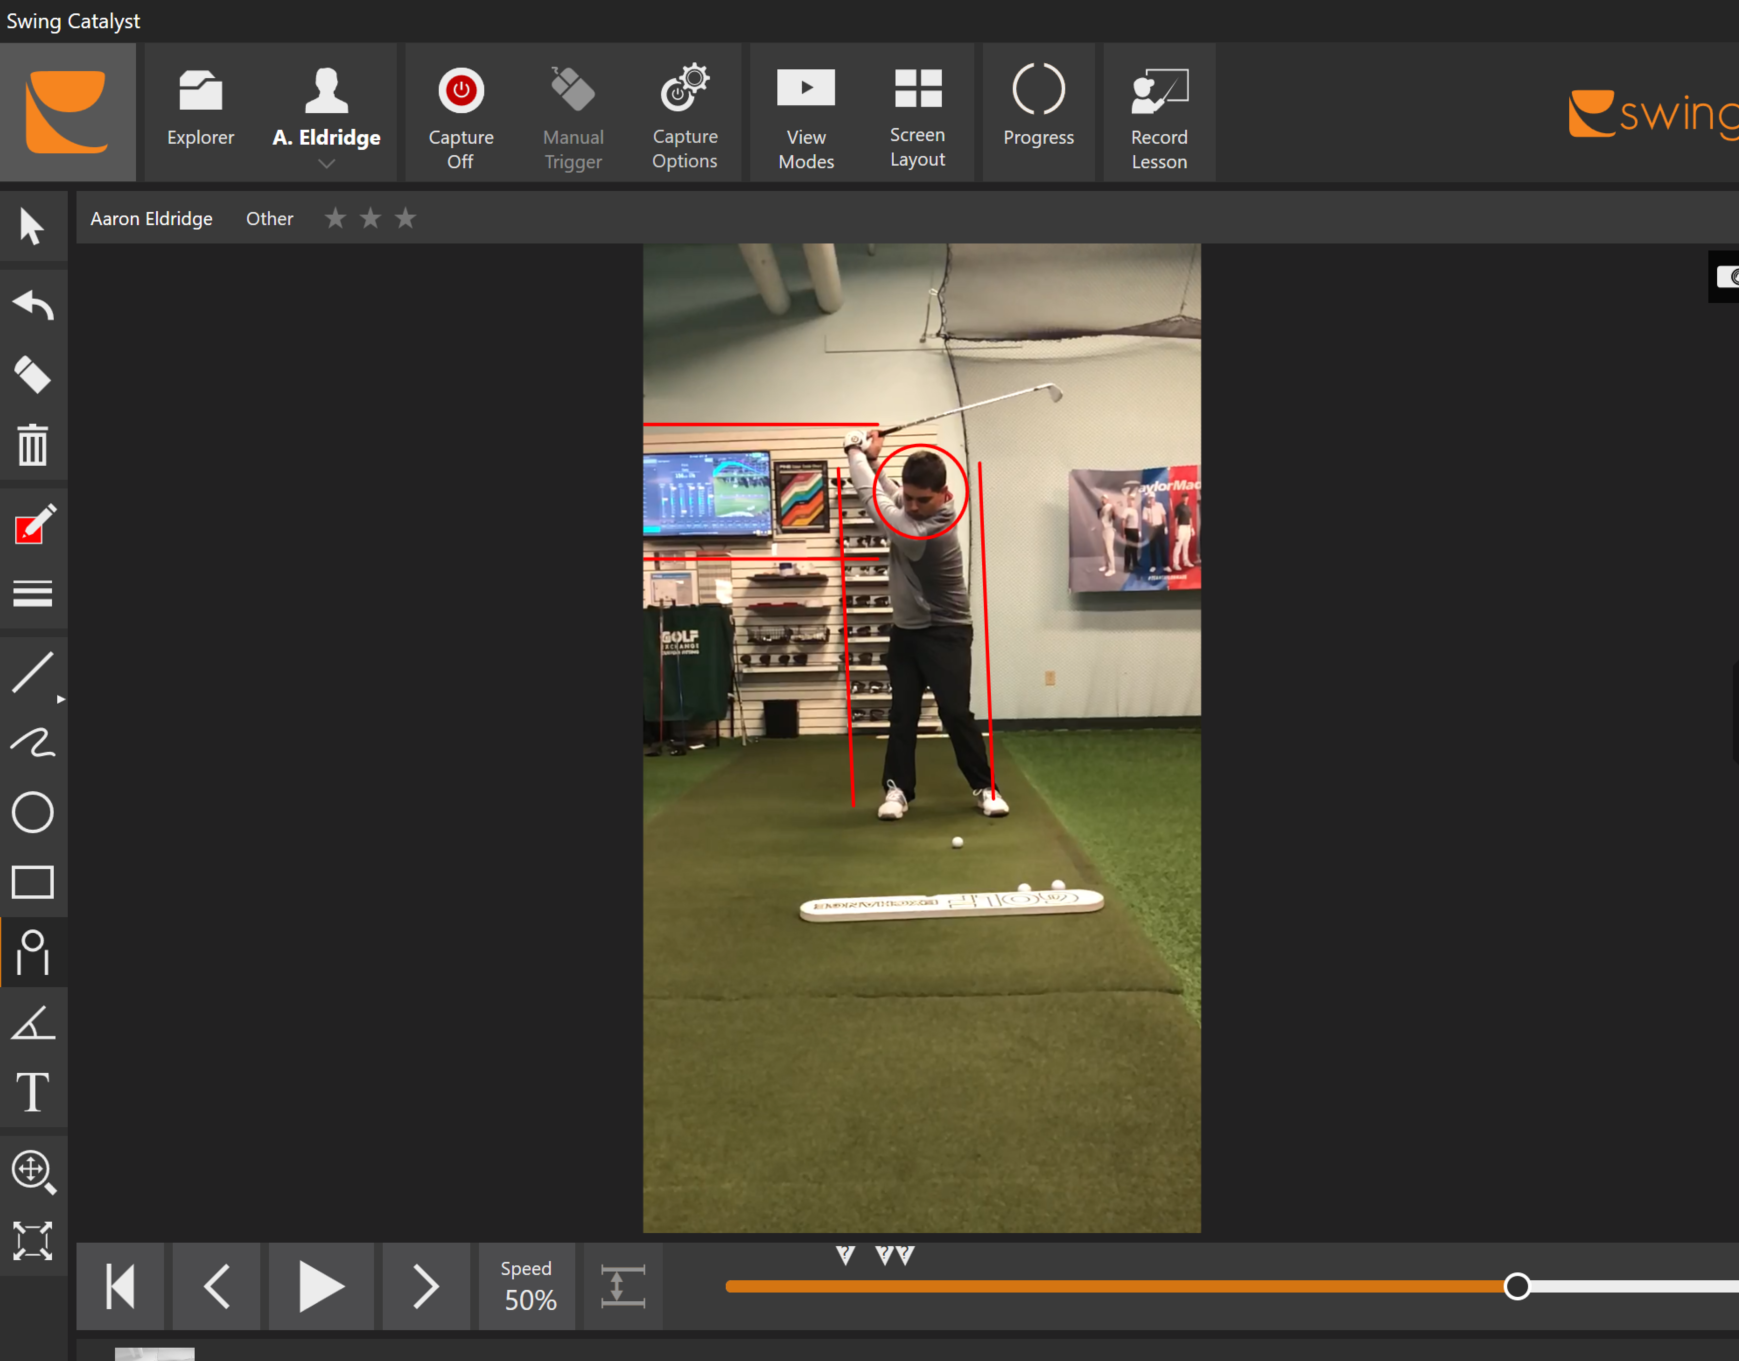 Swing Analysis - When you sign up for lessons with me, you will receive an online locker where all of our lessons and swing videos are analysed, recorded, and sent to you. You can even upload practice sessions and I will be able to view them! Each recorded lesson will give an analyzed breakdown of the certain positions that we covered from the previous lesson. Swing videos are analyzed through the V1 system and the Swing Catalyst system.